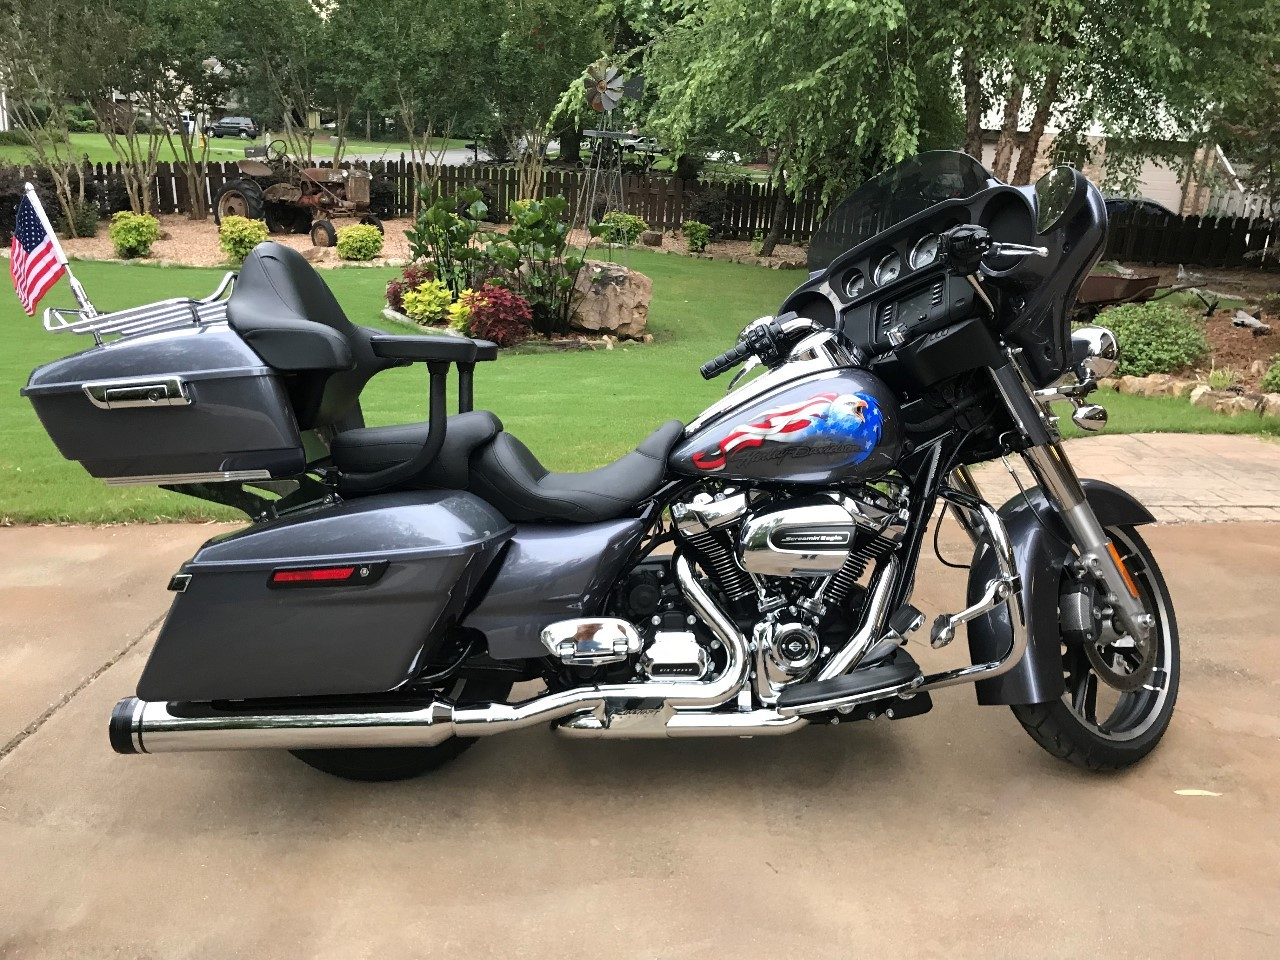 Alabama - Motorcycles For Sale - Cycle Trader